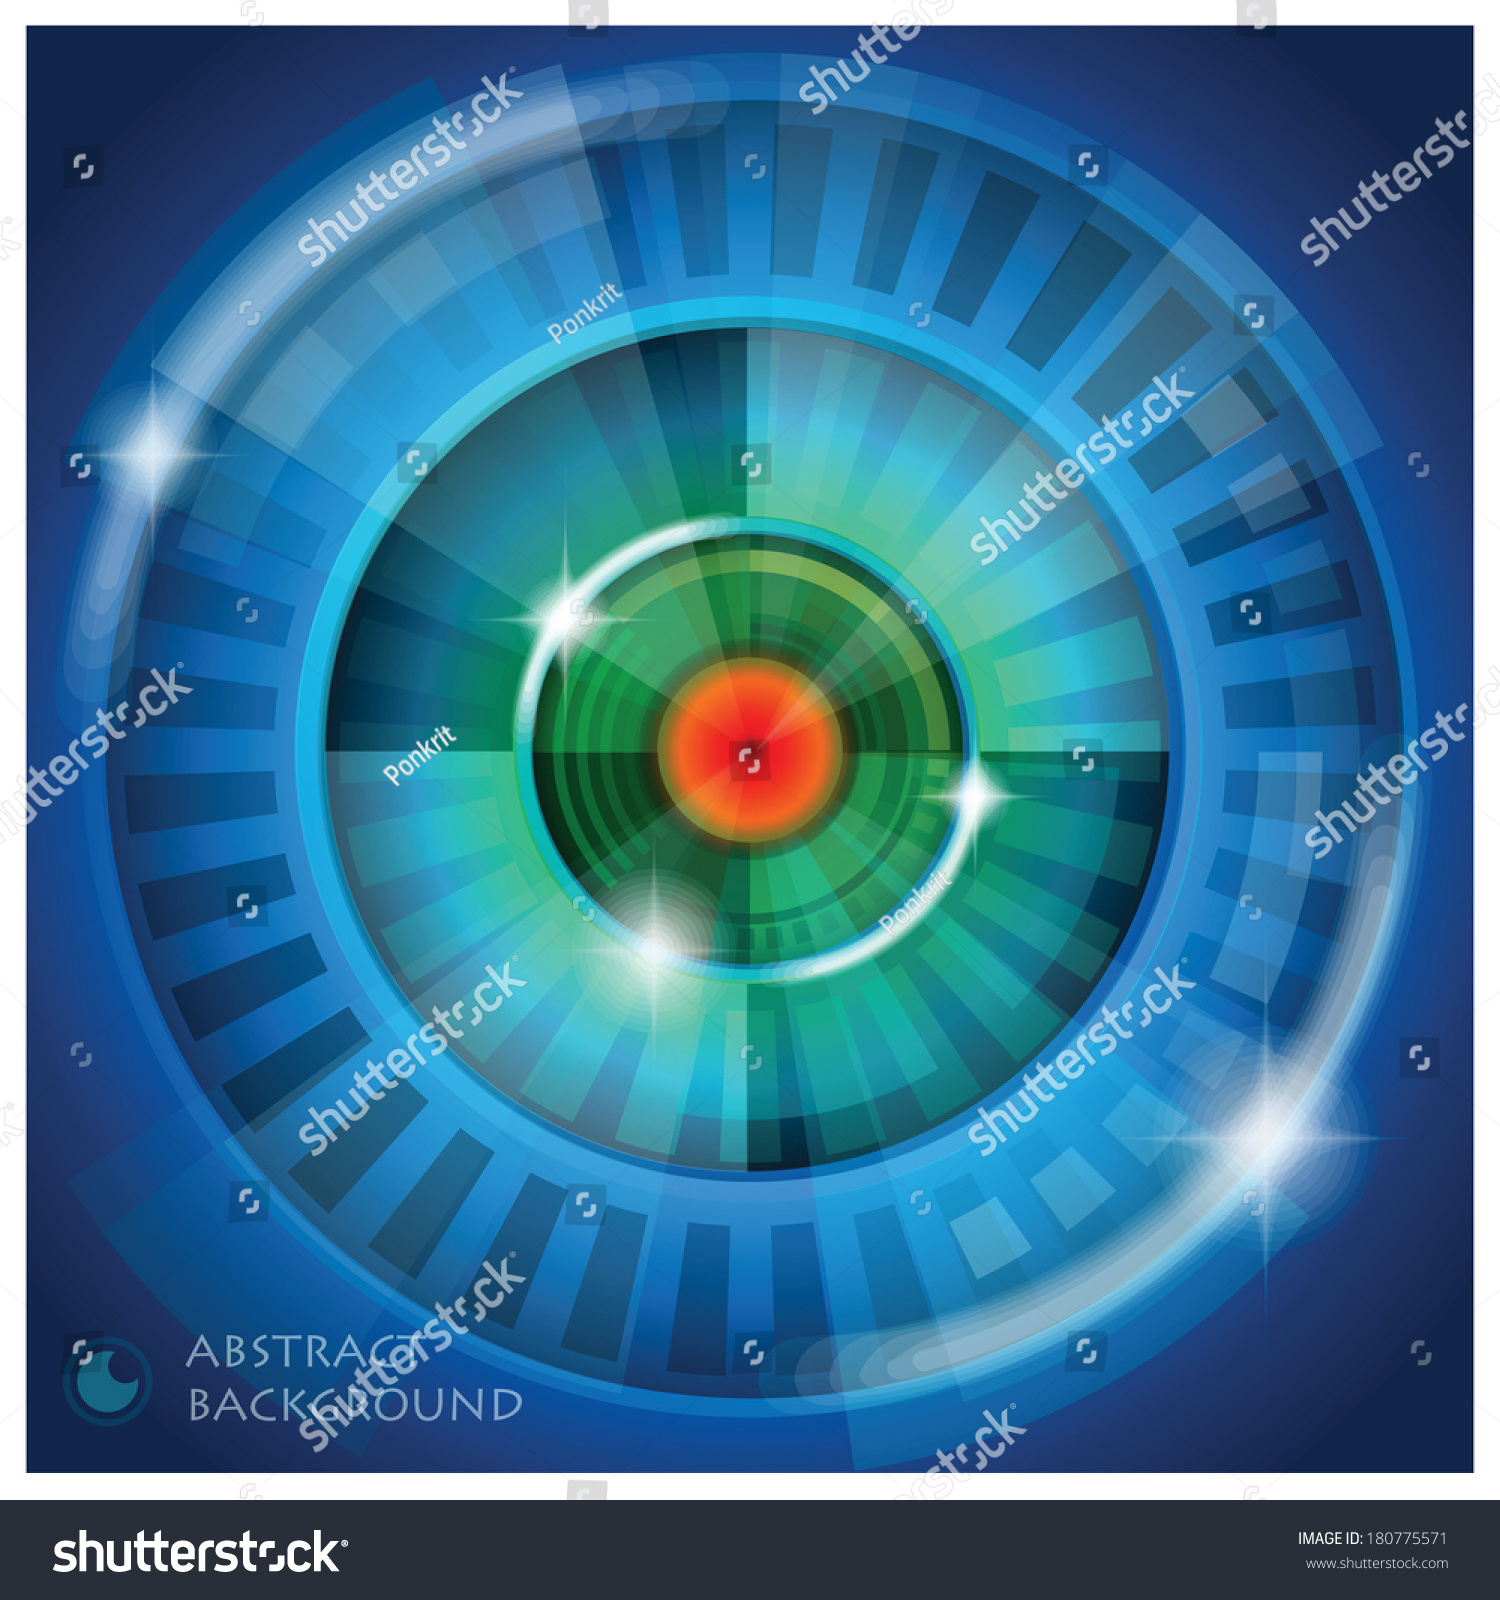 hight resolution of eye shape vector abstract background design template